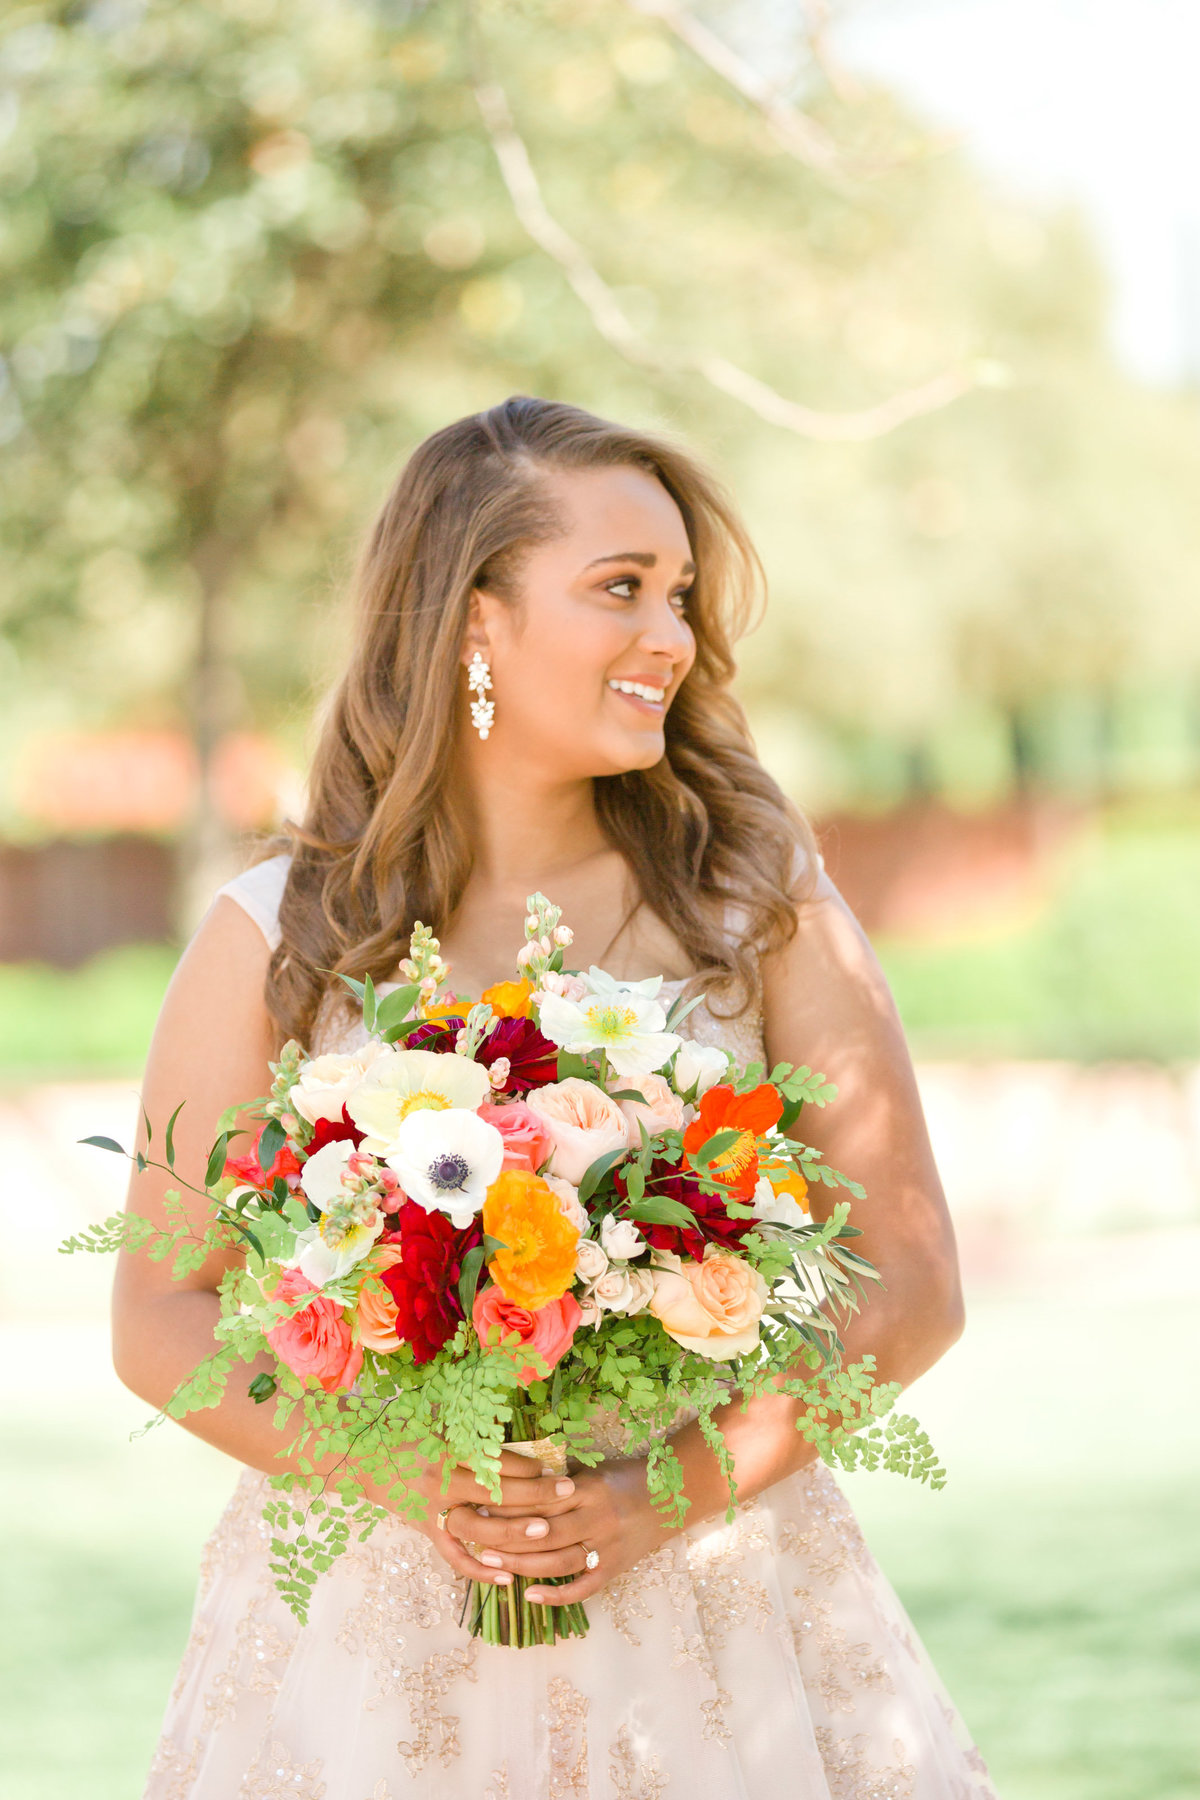 bridal portrait holding bridal bouquet of spring flowers